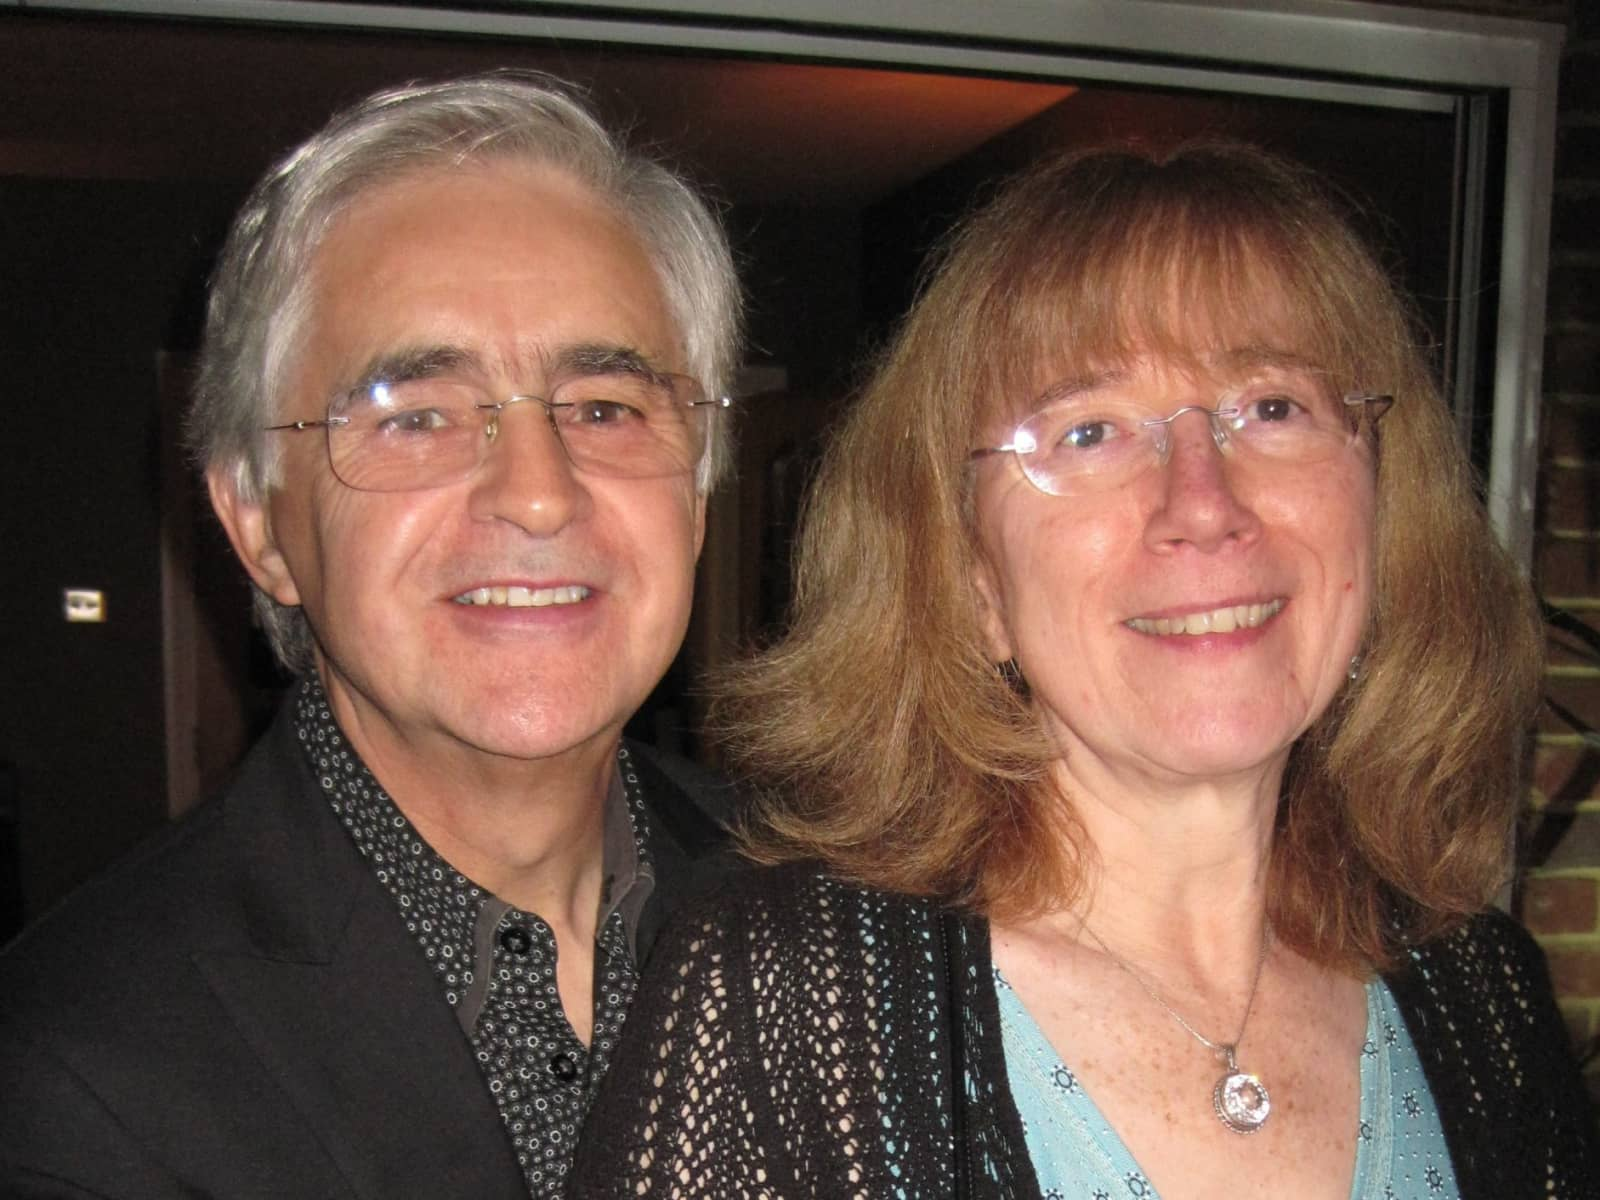 Phill & Wendy from Slough, United Kingdom